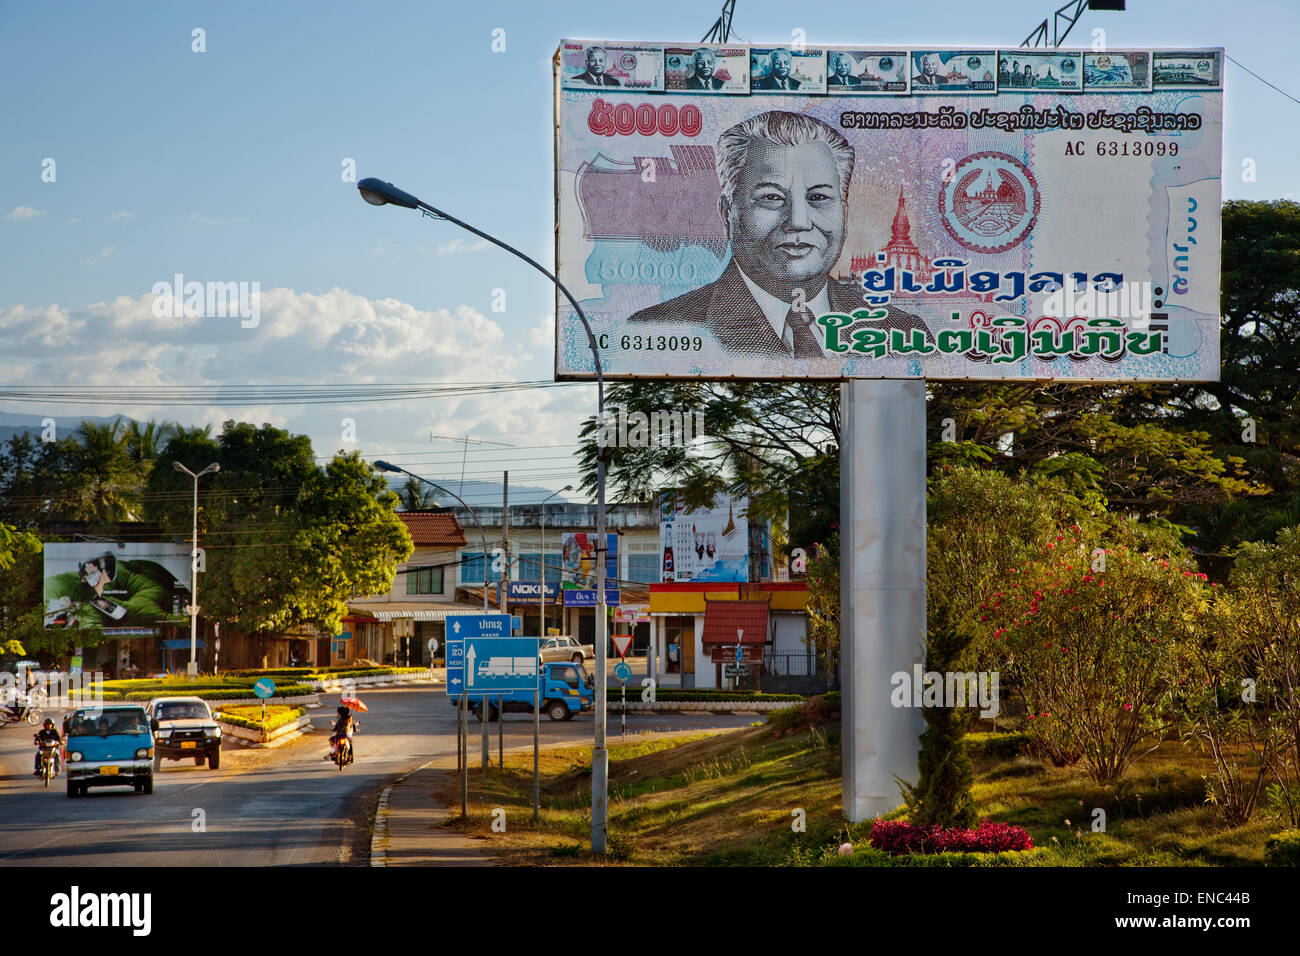 Pakse, Laos;a giant poster reproducing a Laotian banknote including a portrait of Kaysone Phovihane, president who - Stock Image